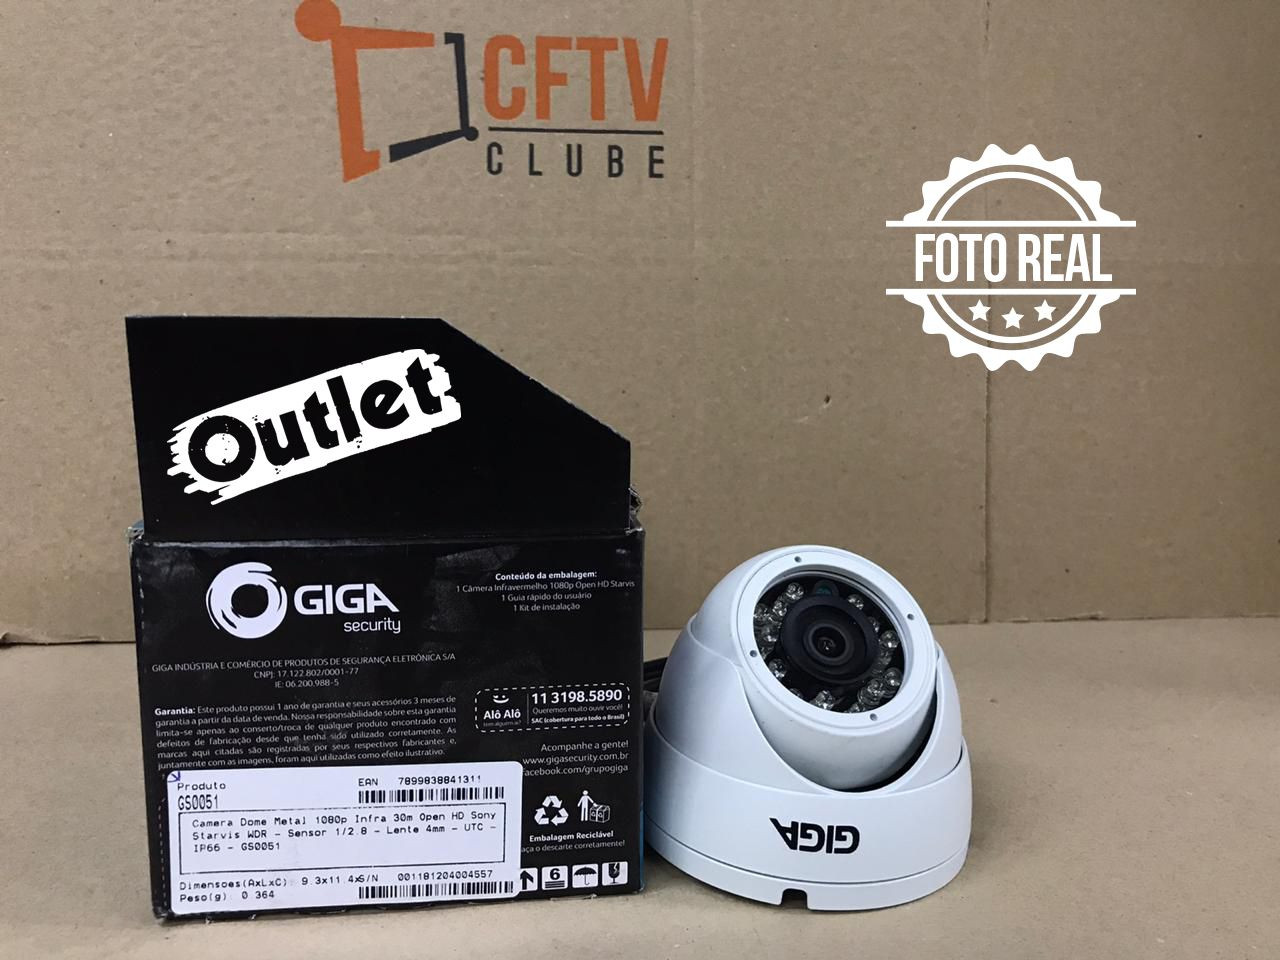 Outlet - Câmera Giga GS0051 Dome Open HD Sony Starvis IR WDR 30M 4MM IP66 Full HD (2.0MP   1080P   4mm   Metal)  - CFTV Clube   Brasil